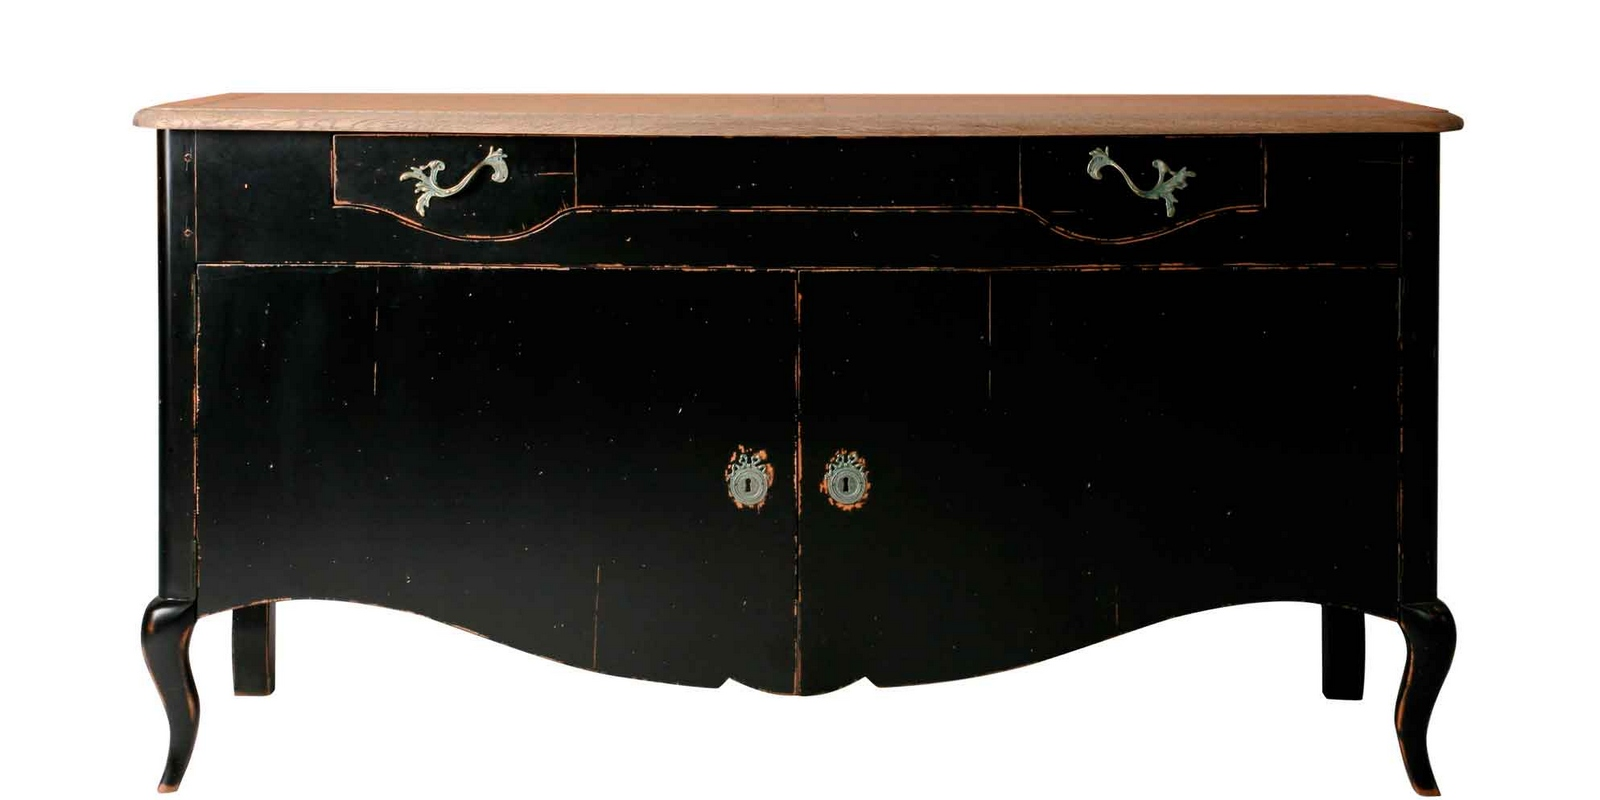 commode boheme pardin lagreslepardin lagresle. Black Bedroom Furniture Sets. Home Design Ideas